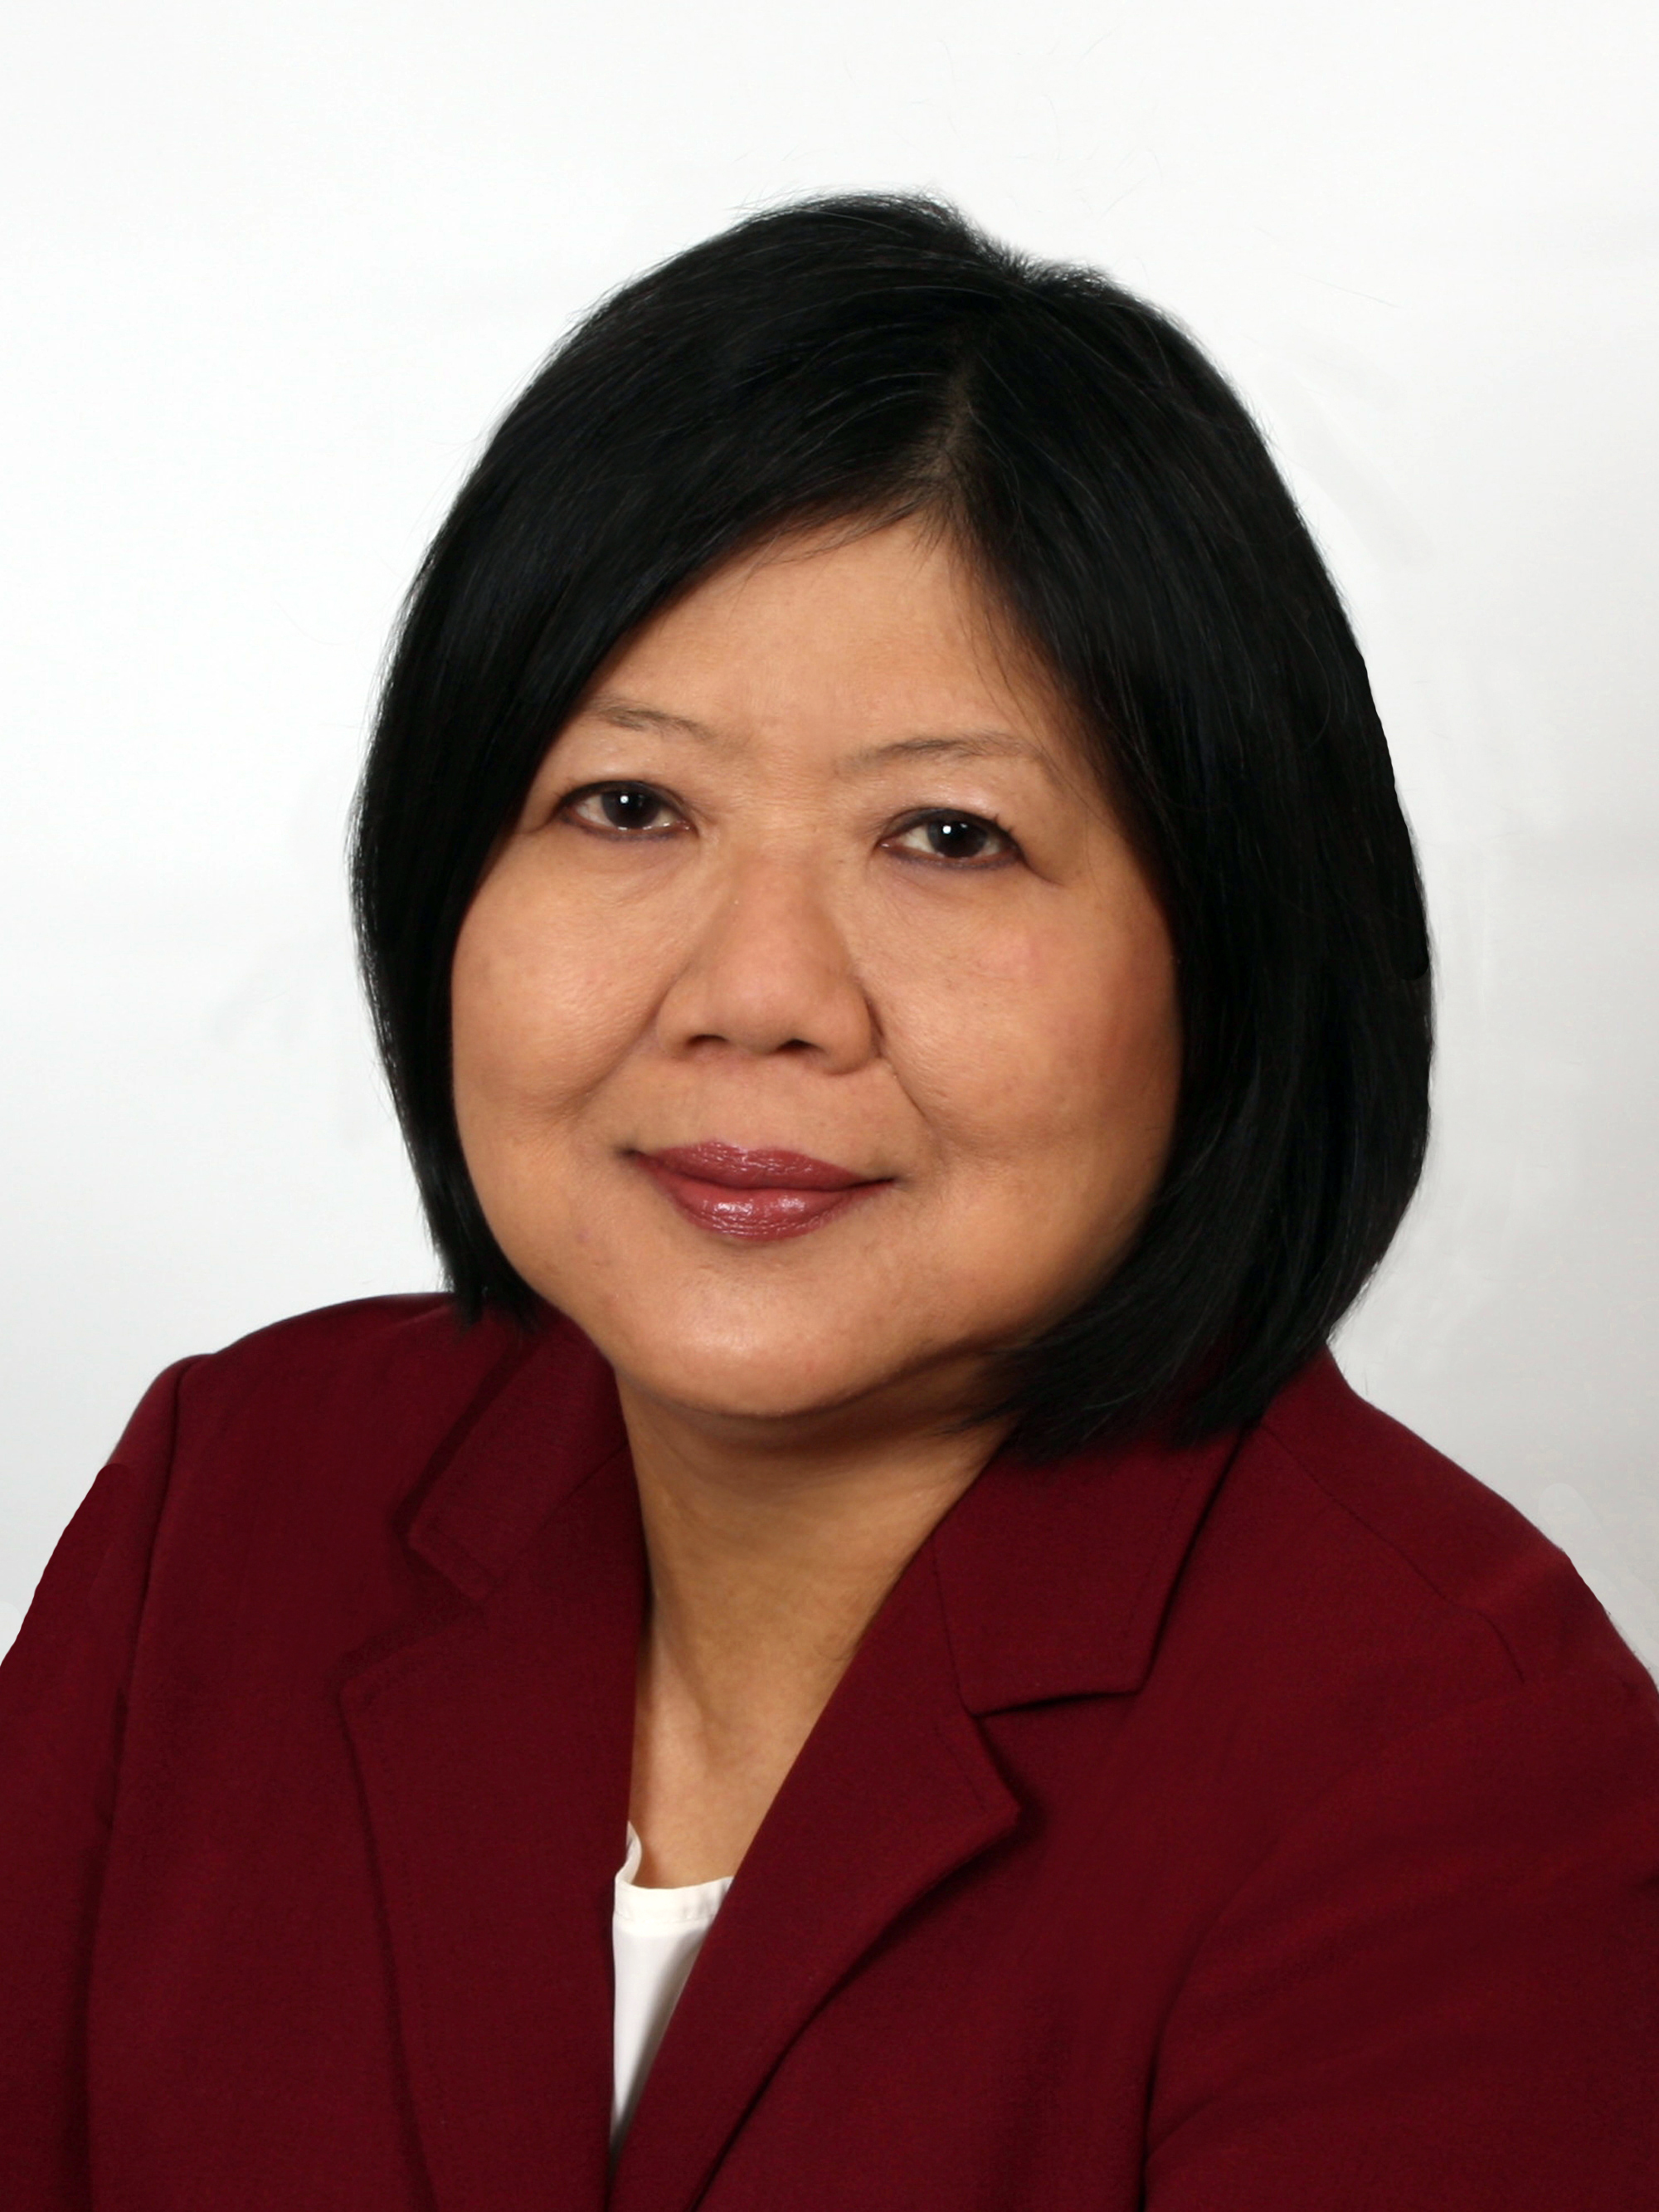 connie chan